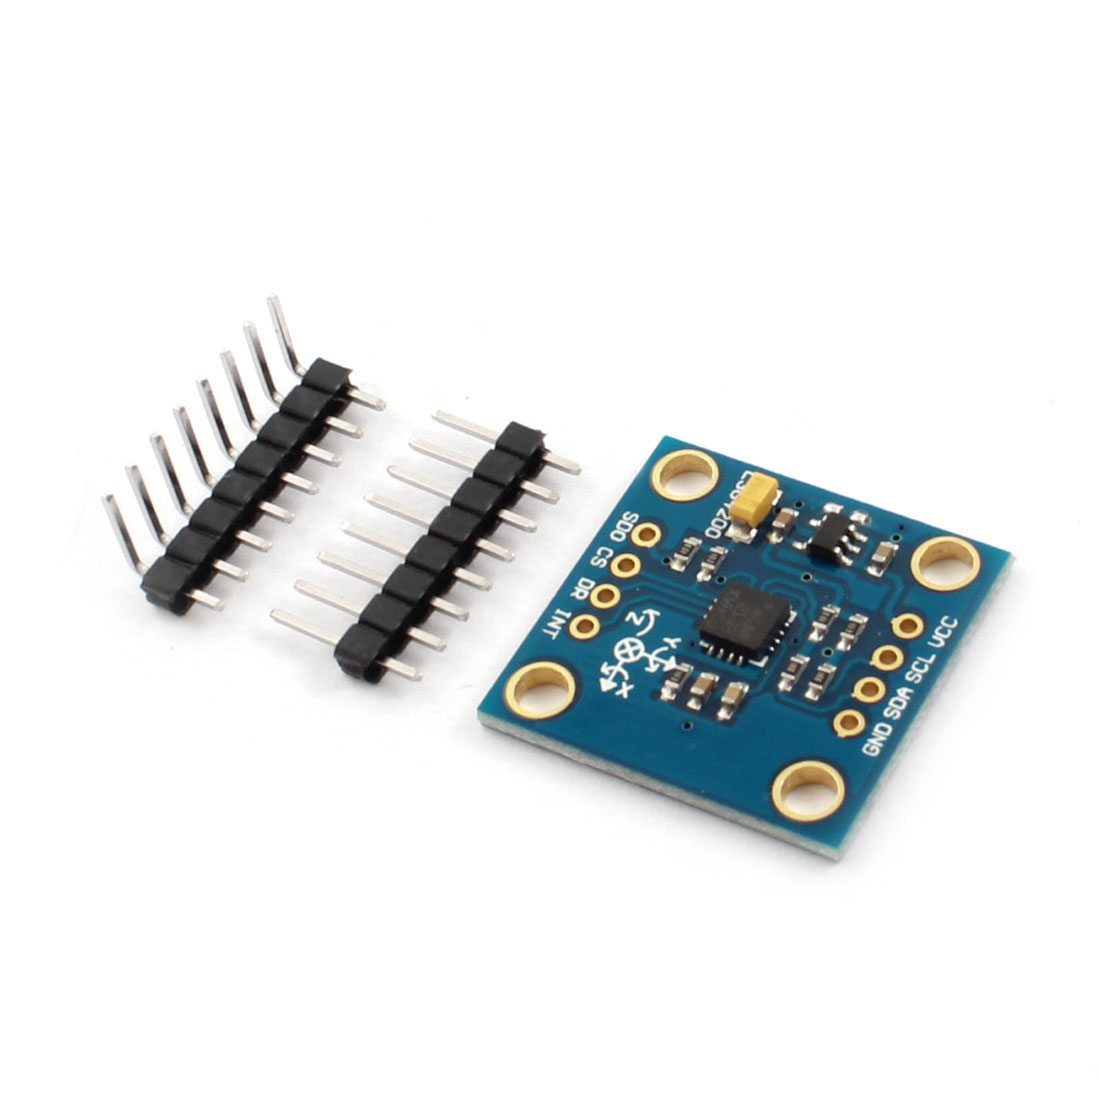 L3G4200D Chip IIC/SPI Double 3-Axis Gyroscope + Accelerometer Module Sensor for MCU